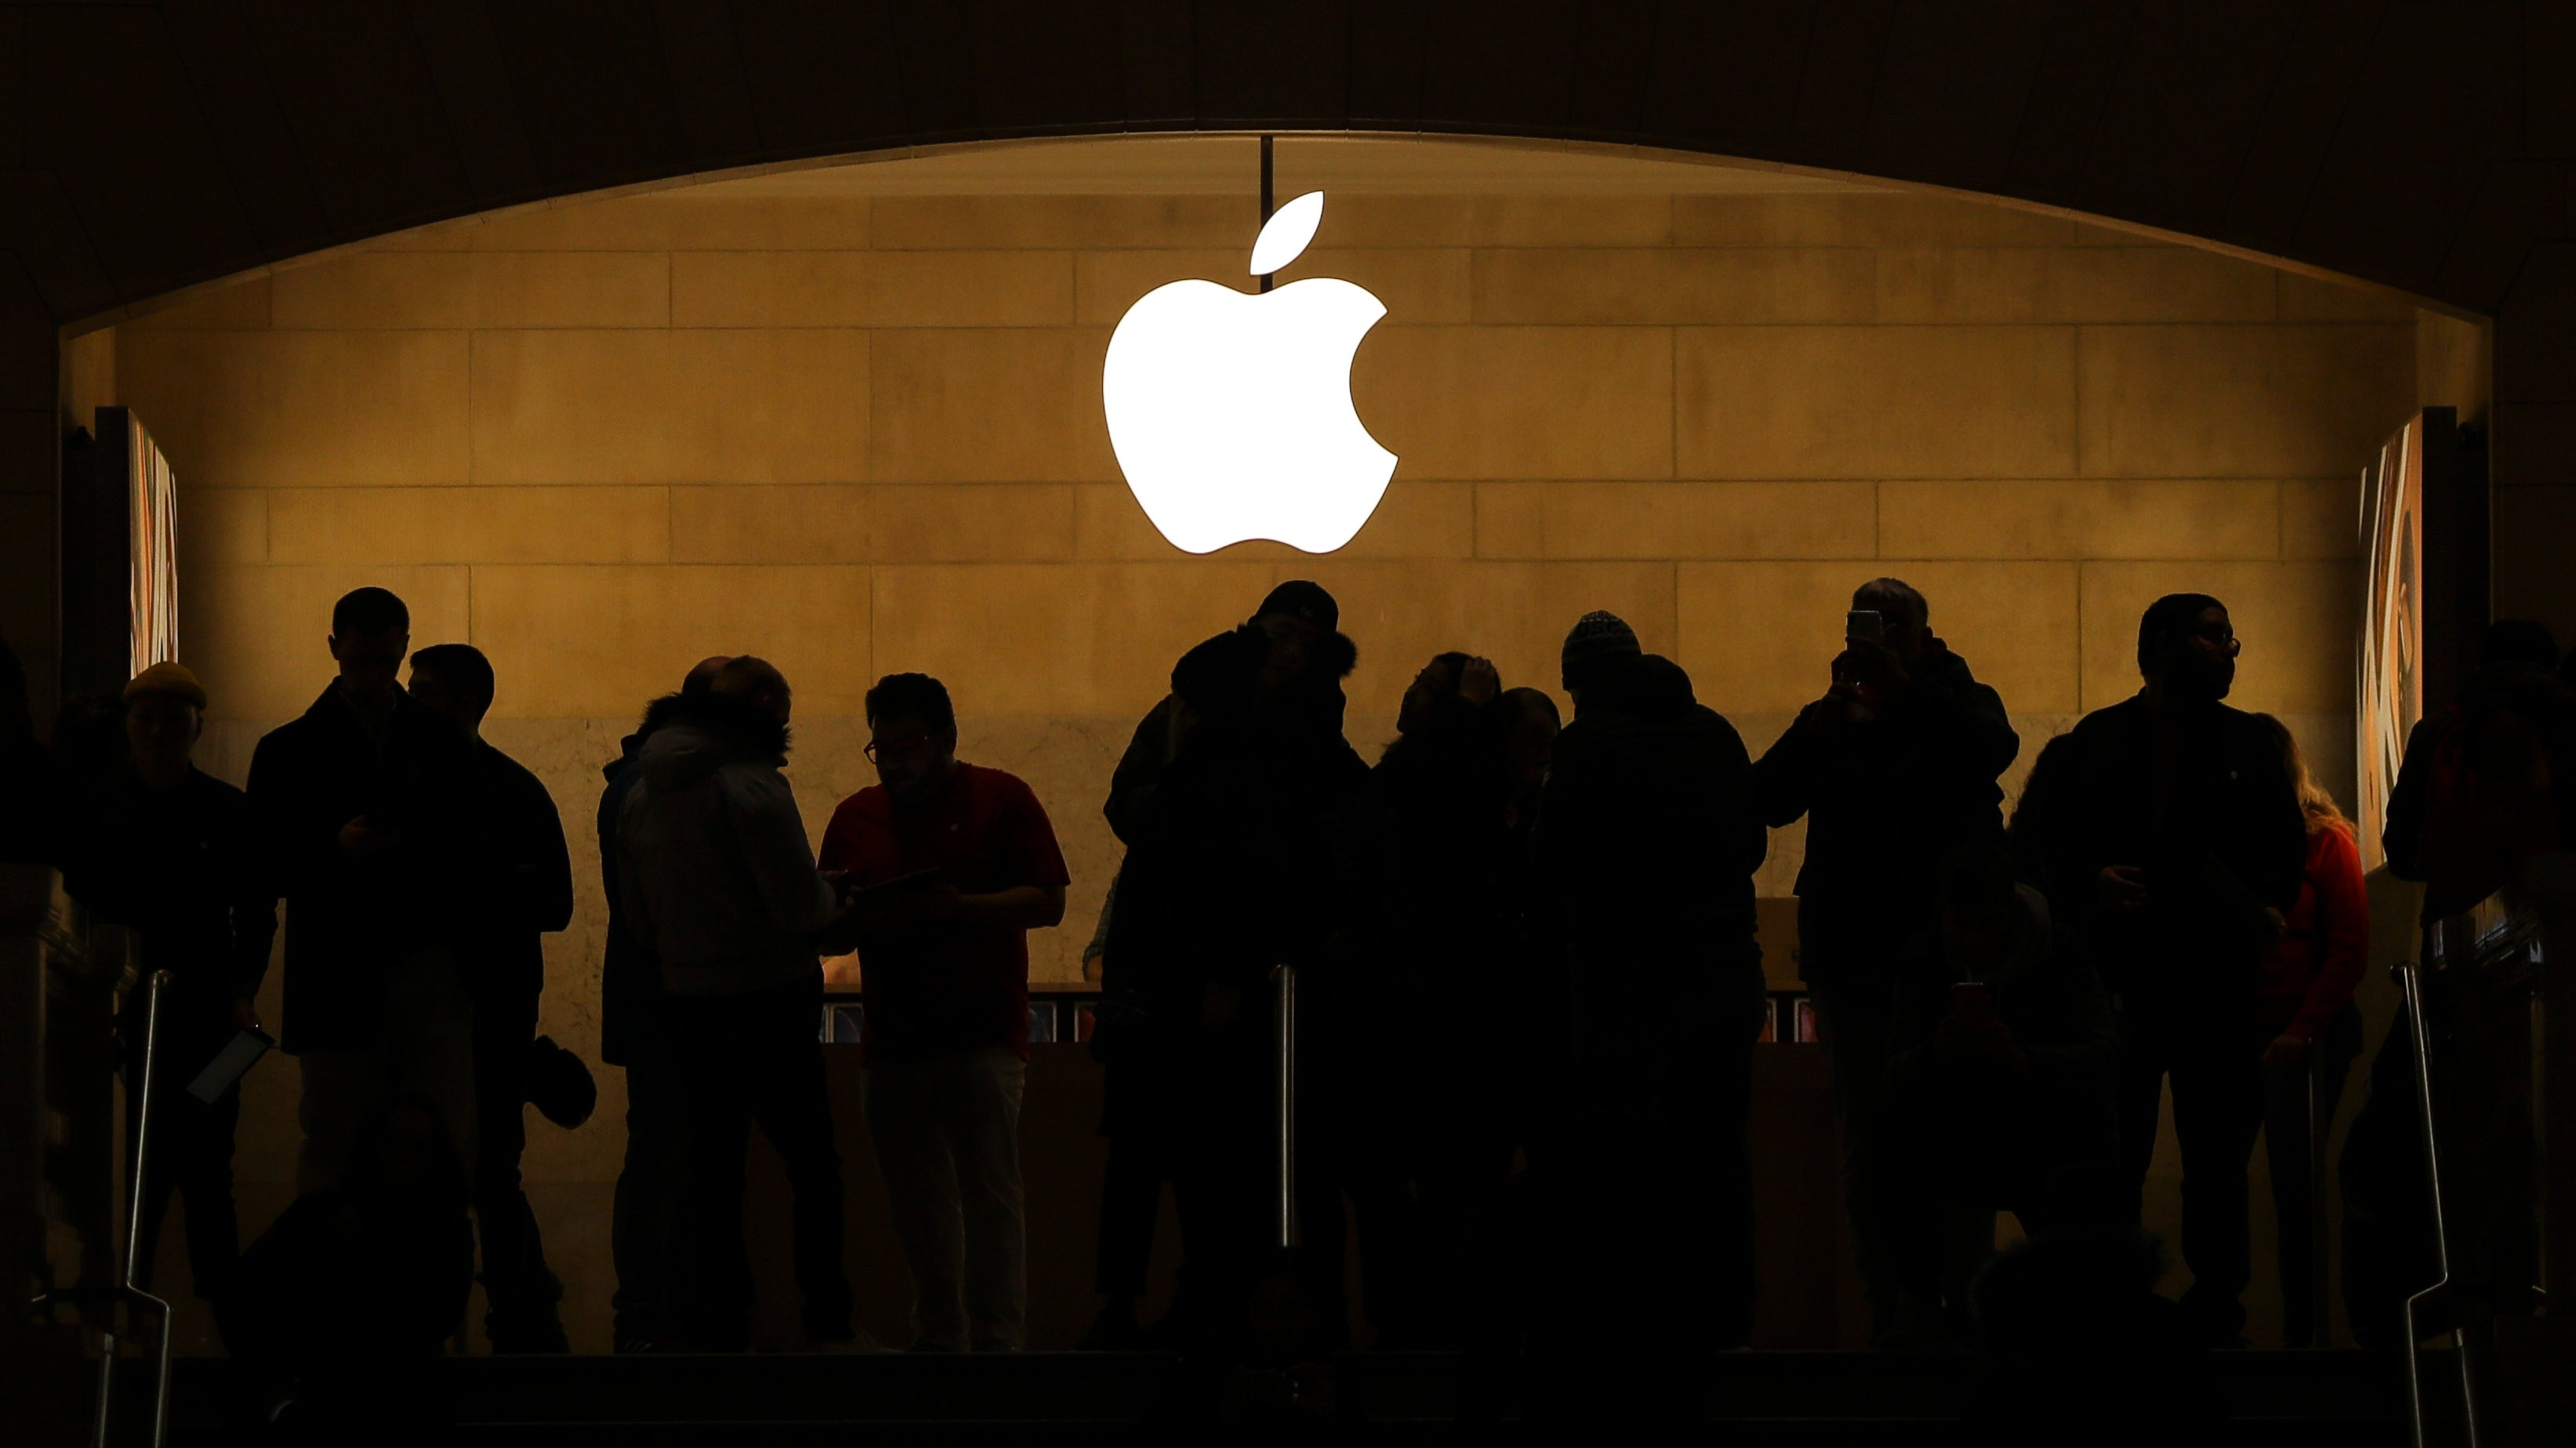 Apple Store Worker Opens Mystery Package And Finds Pound Of Meth